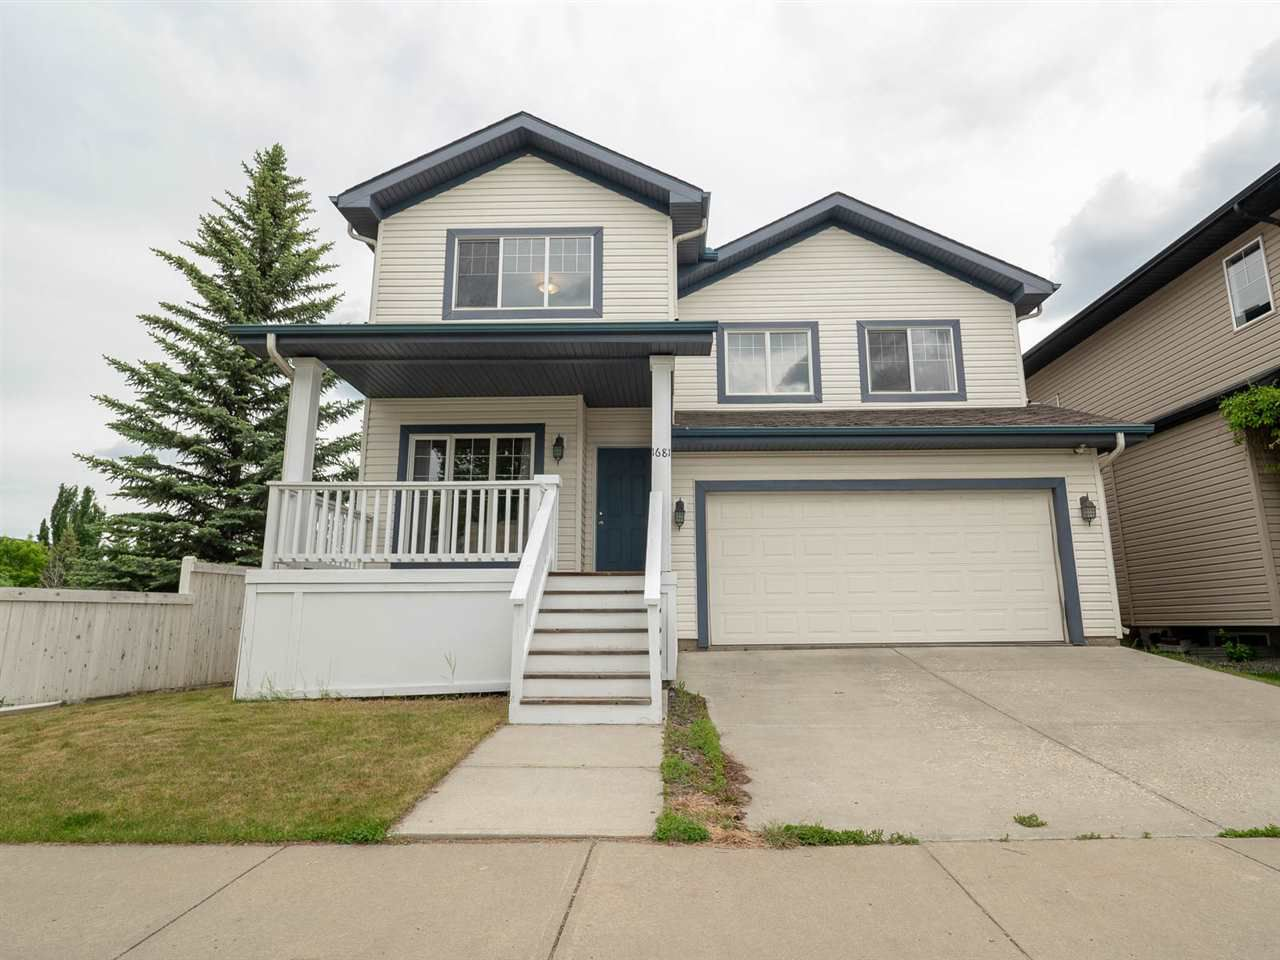 Main Photo: 1681 TOMLINSON Common in Edmonton: Zone 14 House for sale : MLS®# E4161987